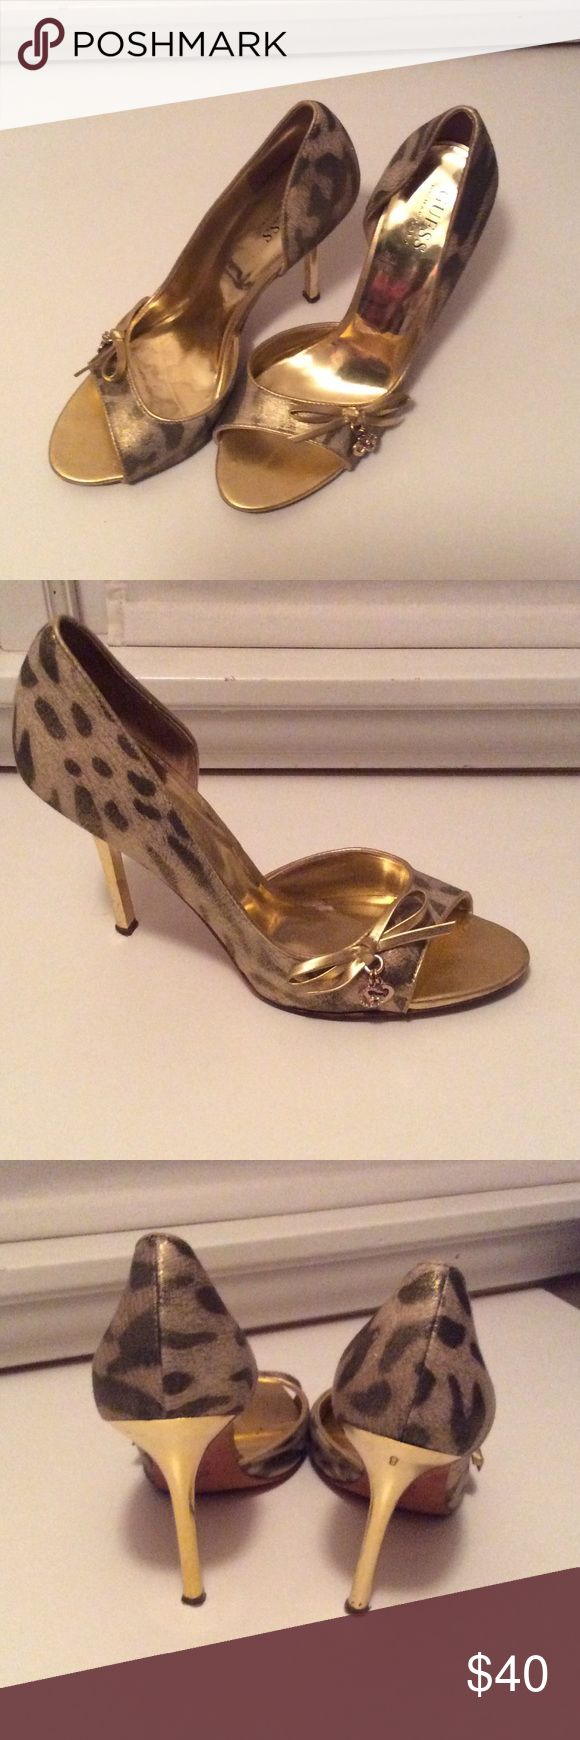 Guess gold pumps Great condition but worn on the bottom Guess Shoes